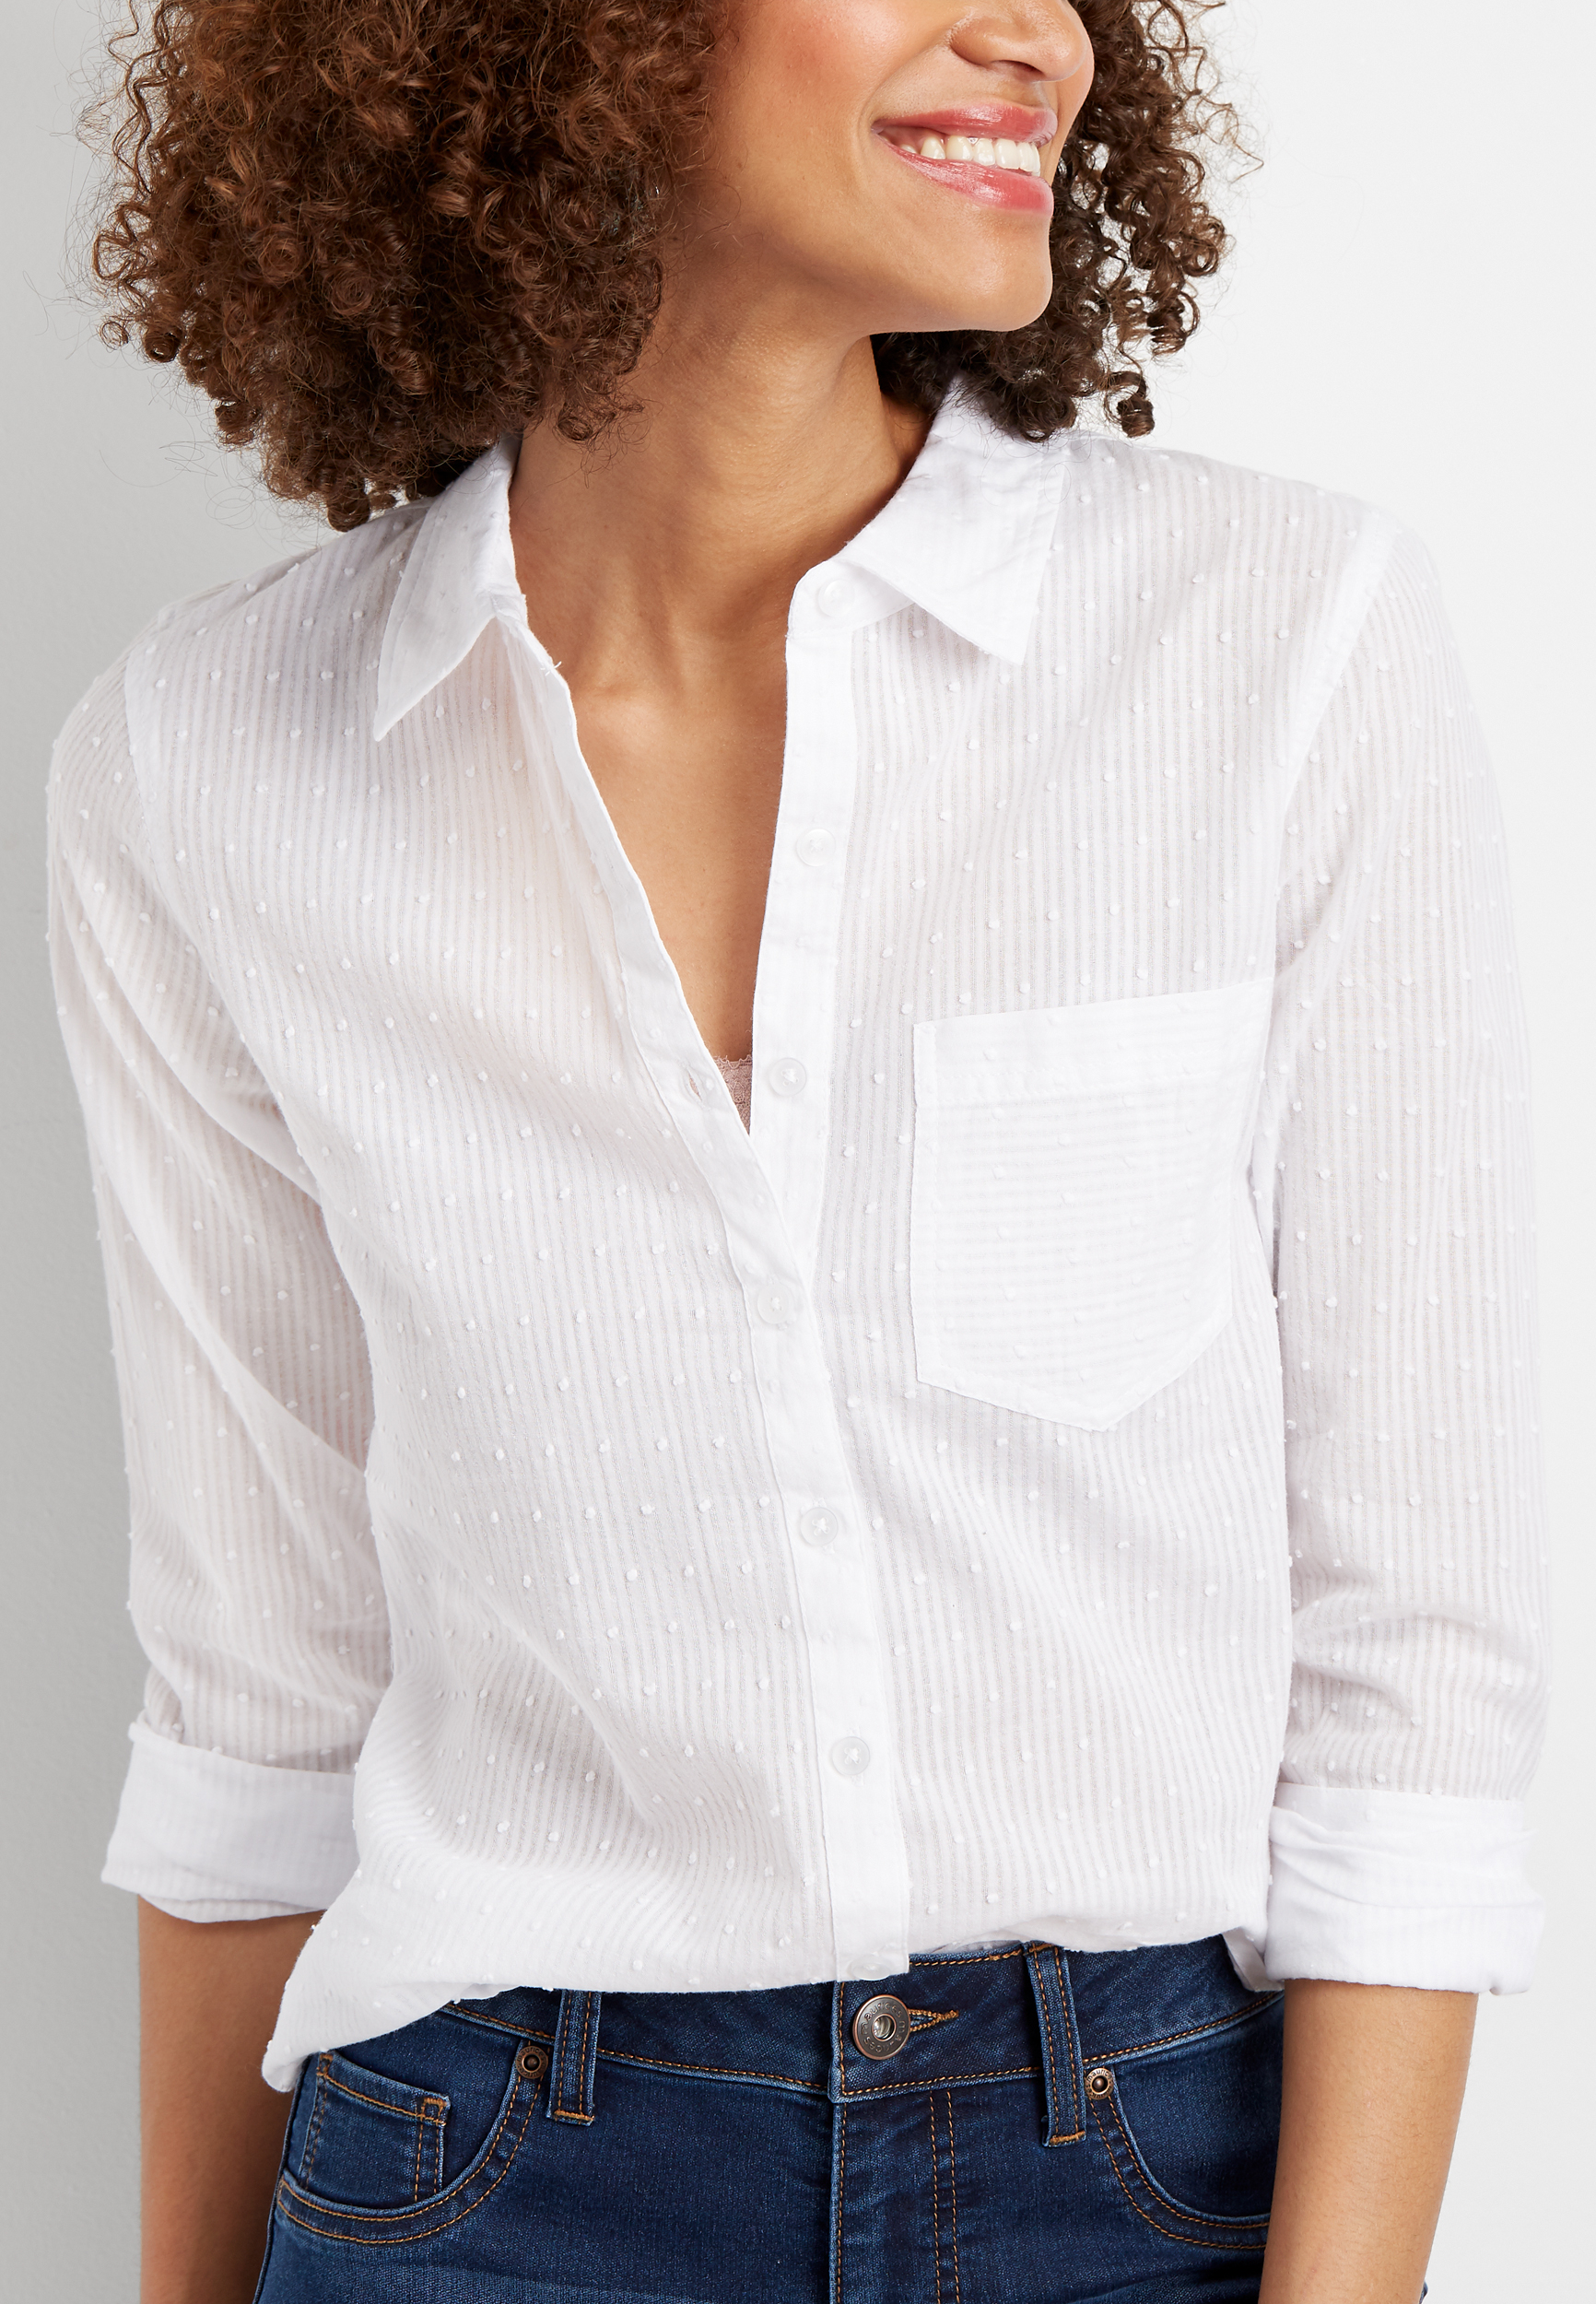 Solid Clip Dot Button Down Shirt by Maurices